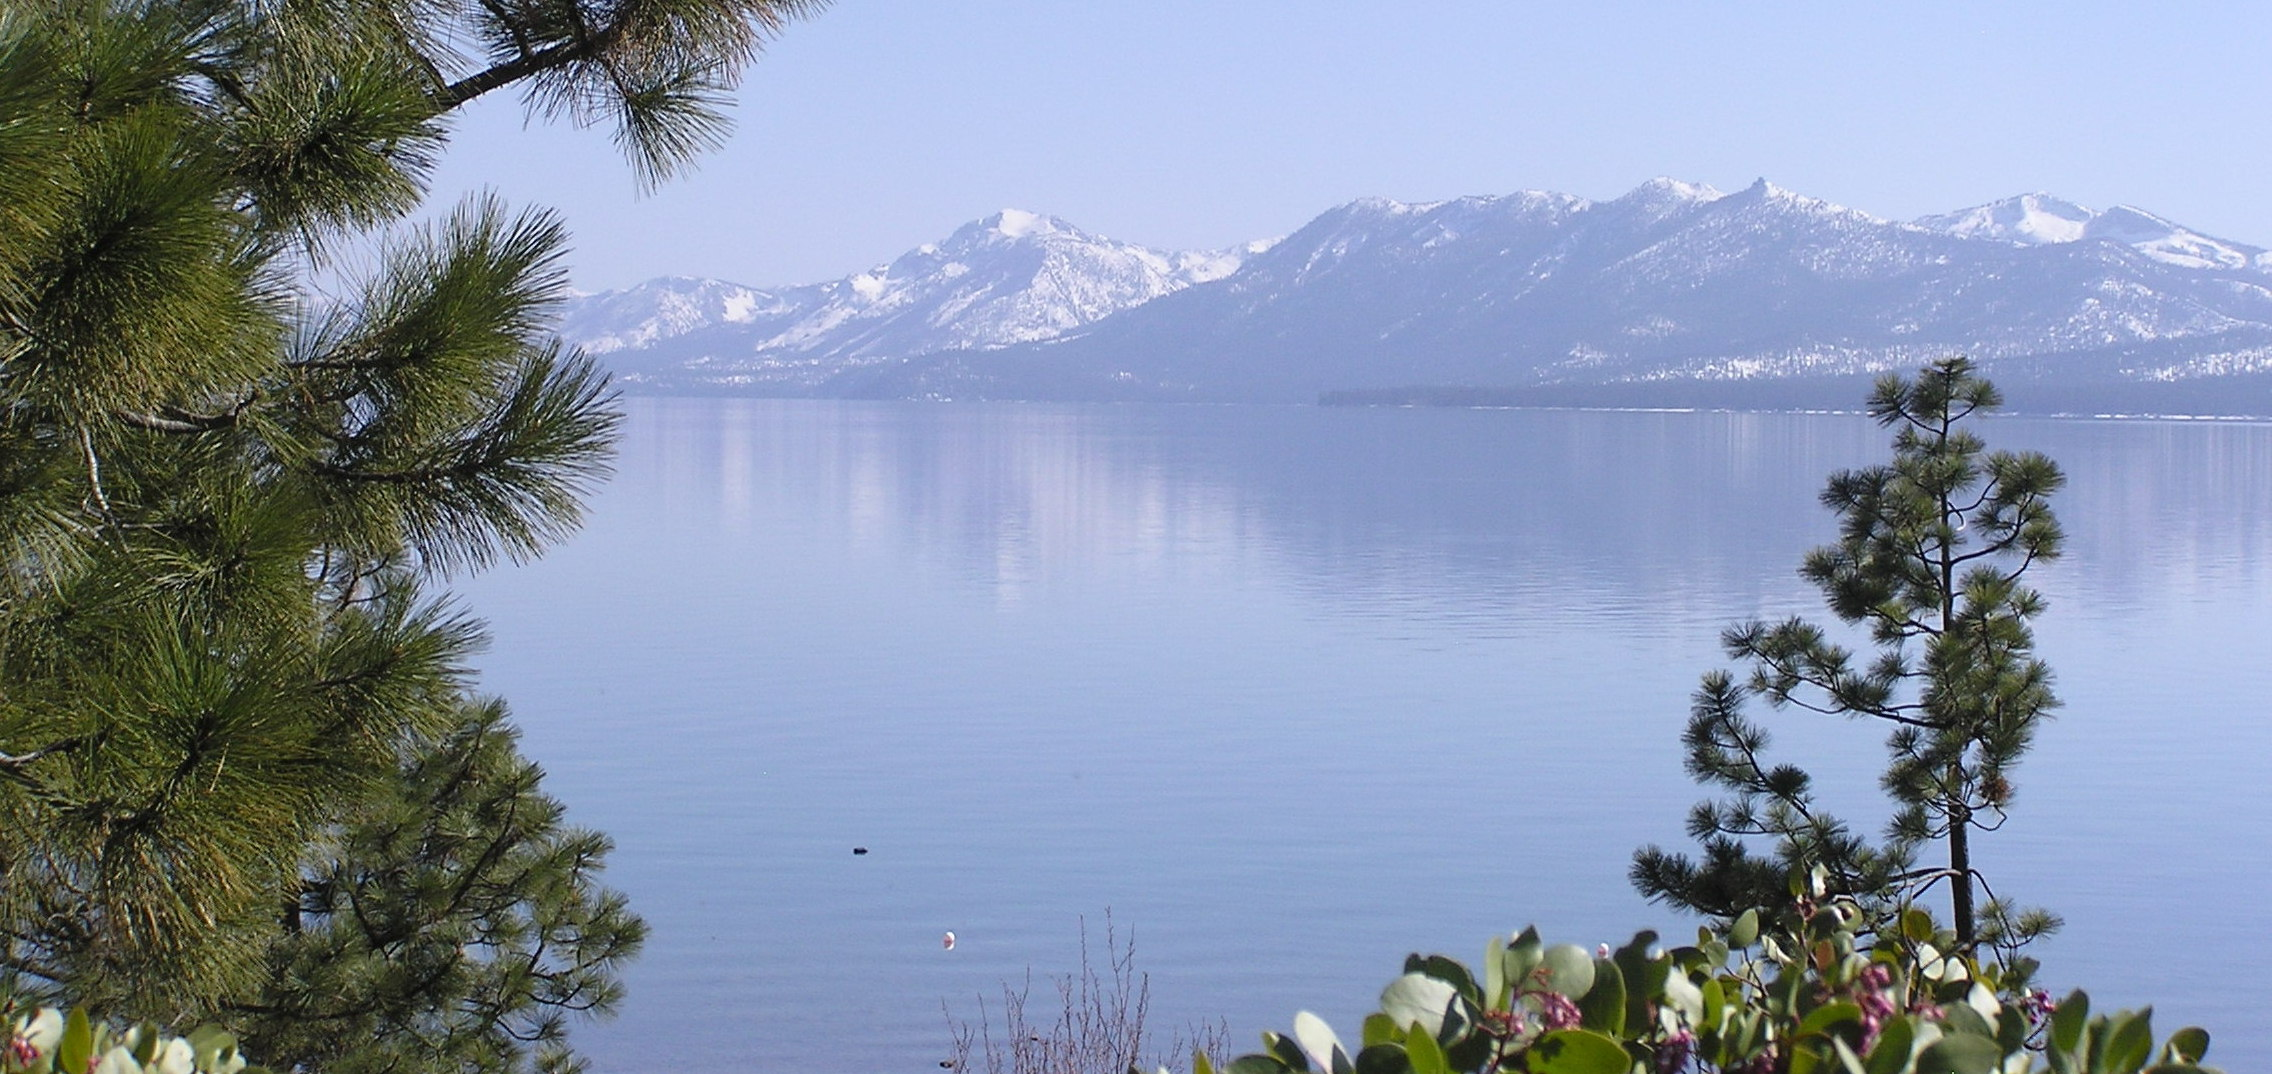 Stunning Lake Tahoe with its snow-covered Sierra Mountains reflecting in the lake.